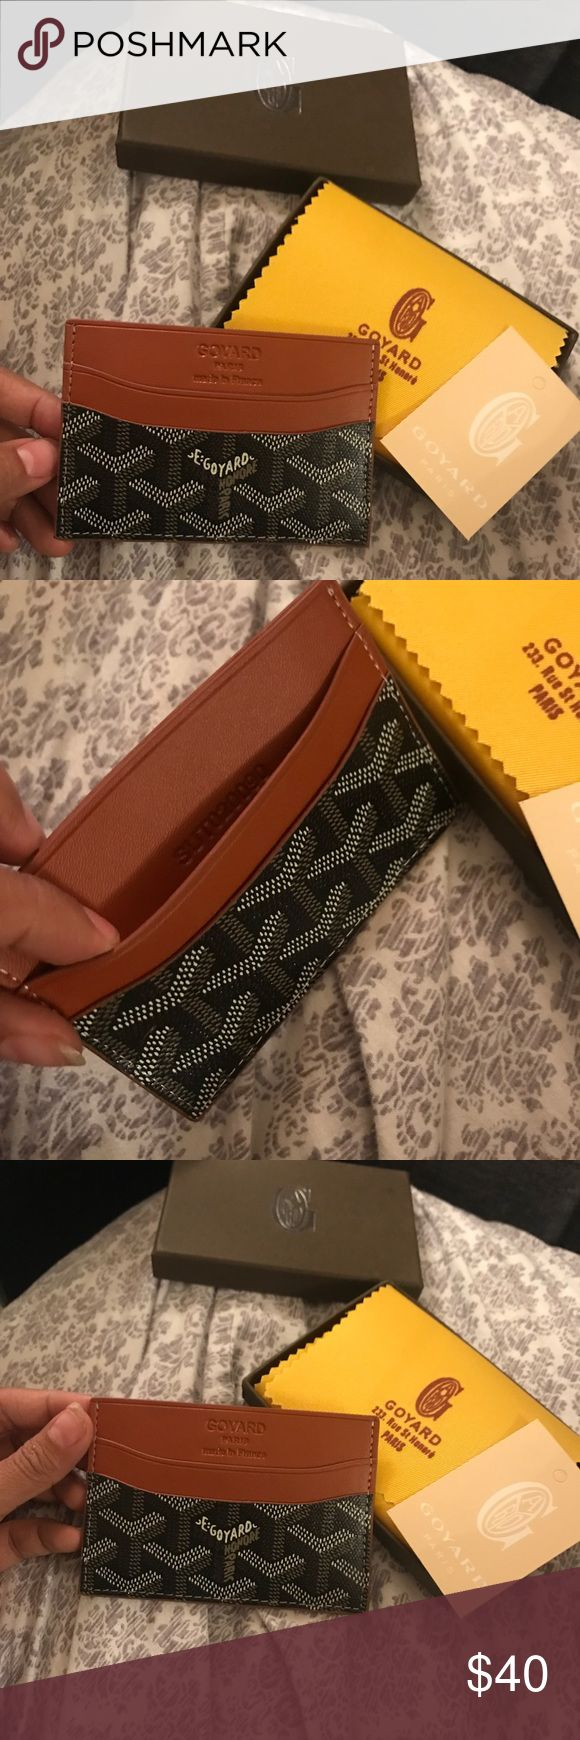 Goyard Card Holder Brand New with Box & original packaging. Great gift. Make offers. Goyard Accessories Key & Card Holders